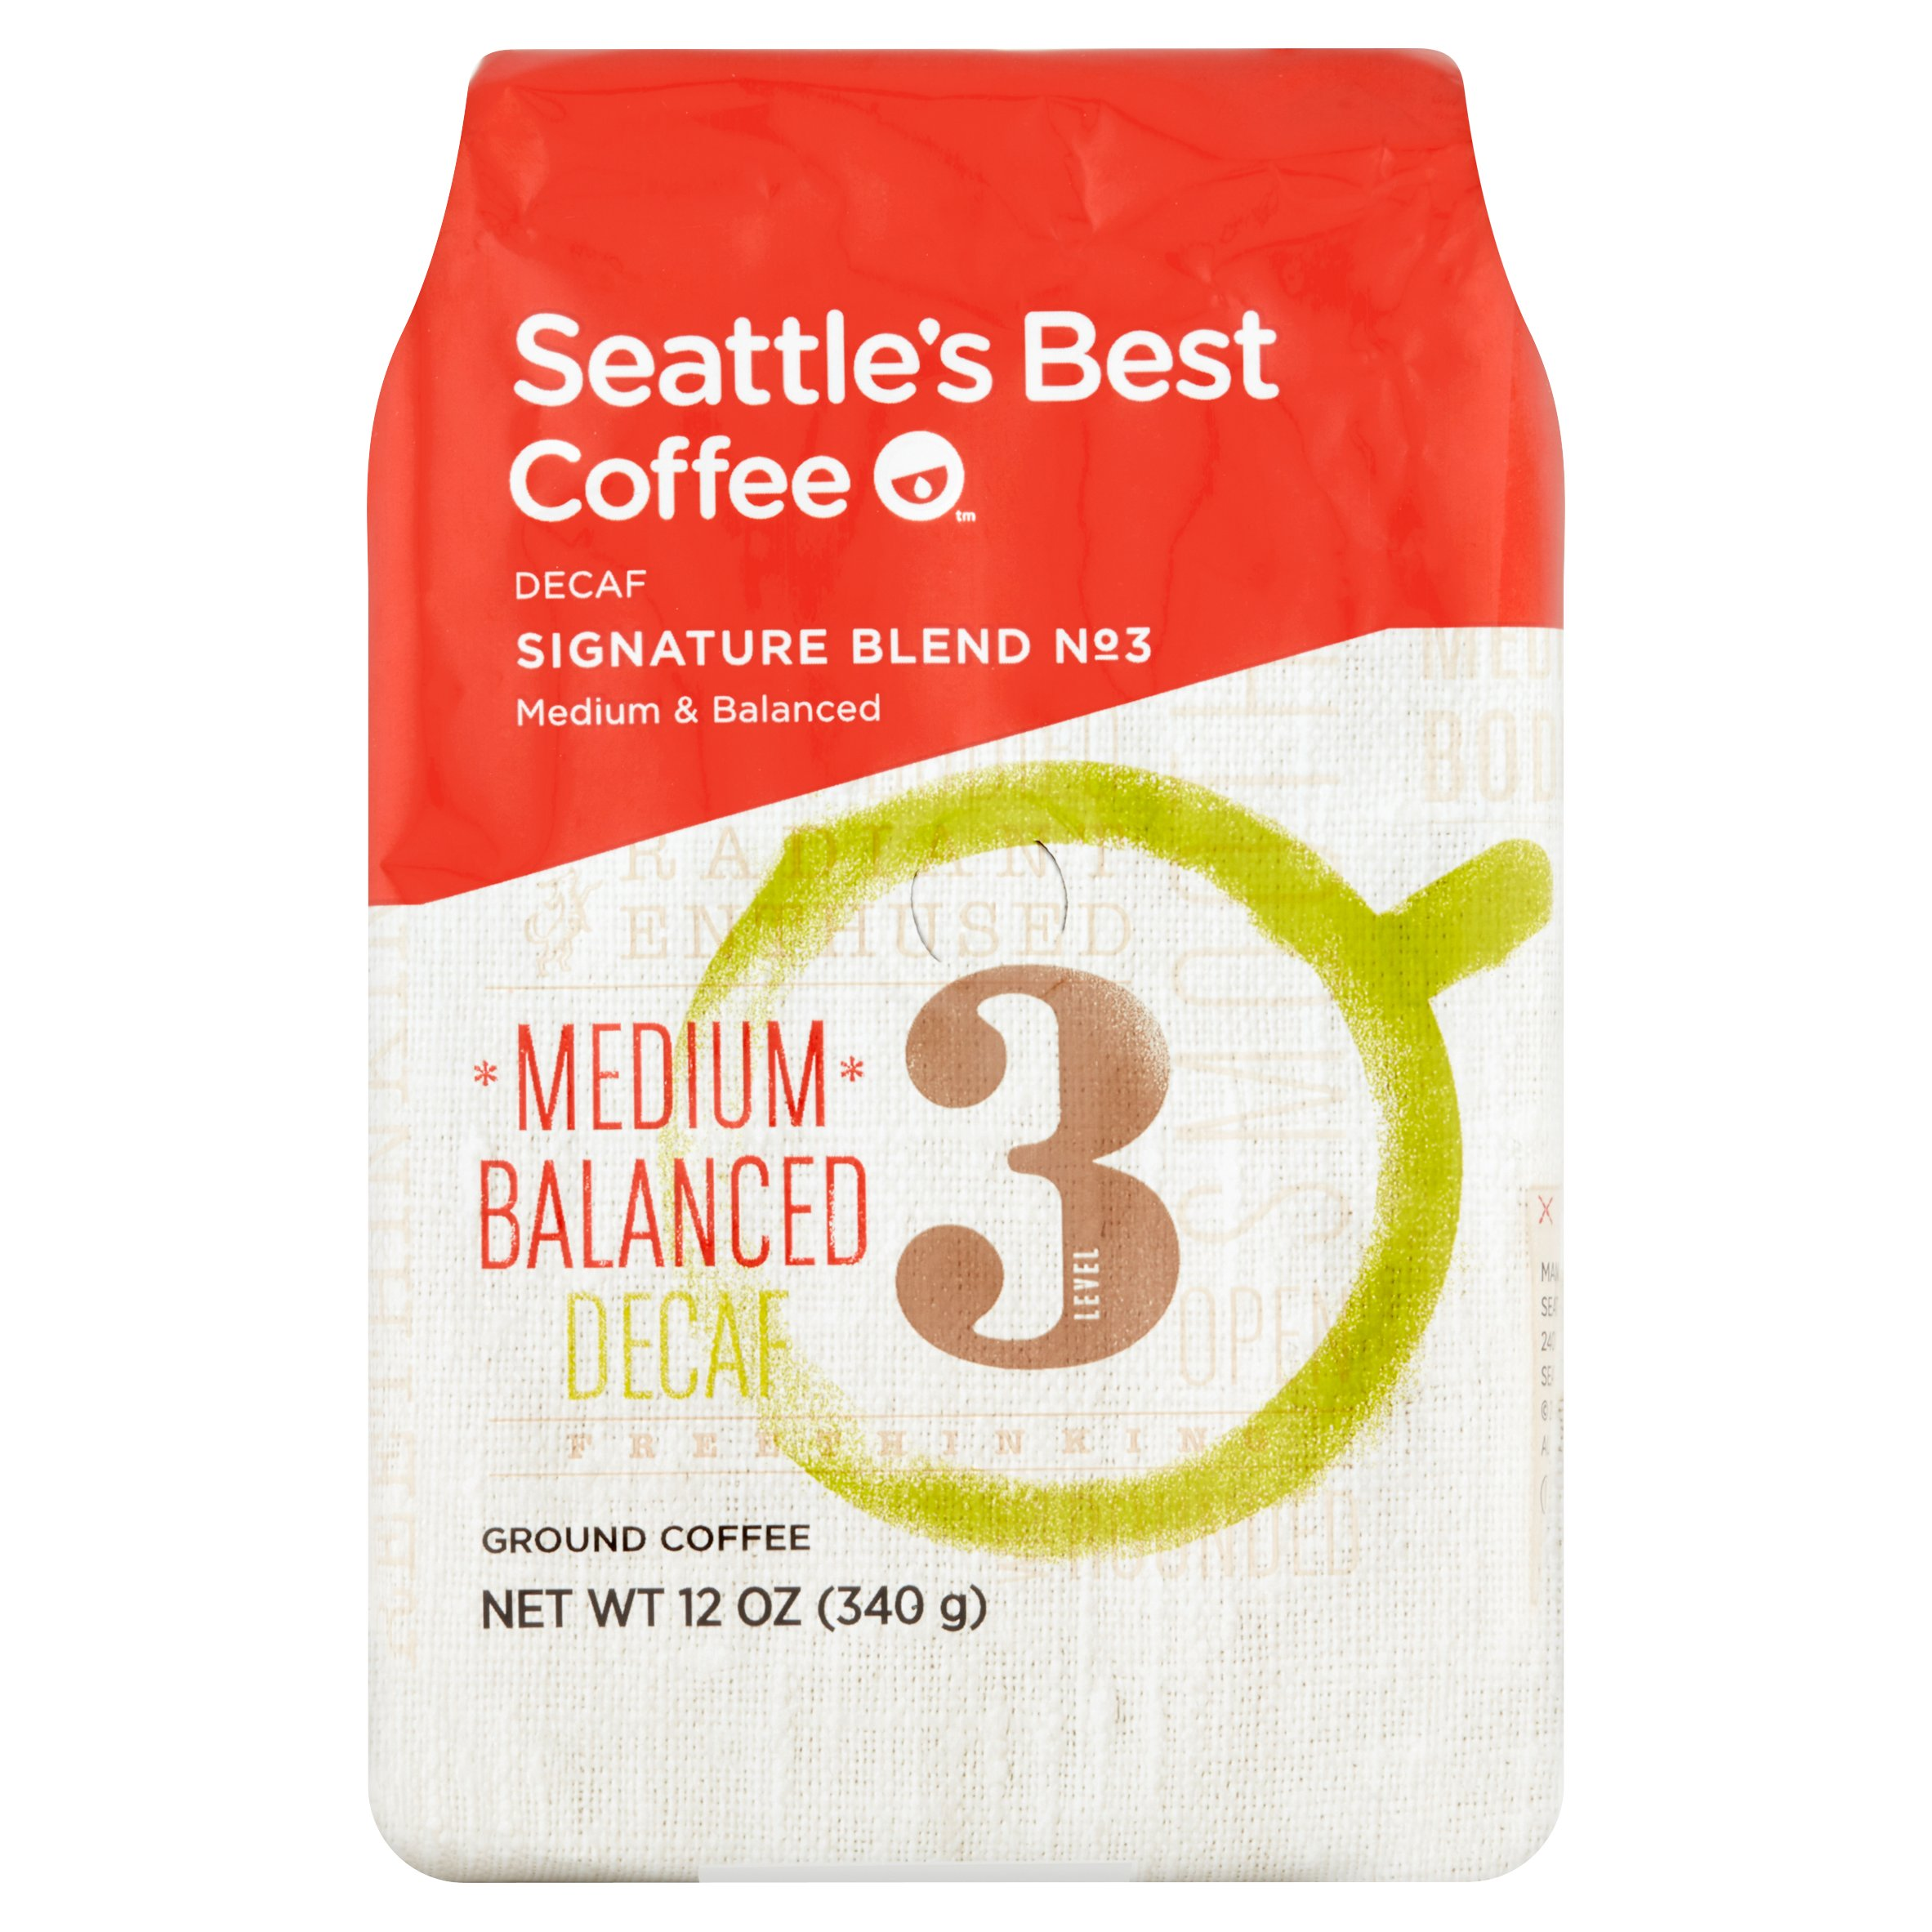 Seattle's Best Coffee Signature Blend No 3 Decaf Ground Coffee 12oz